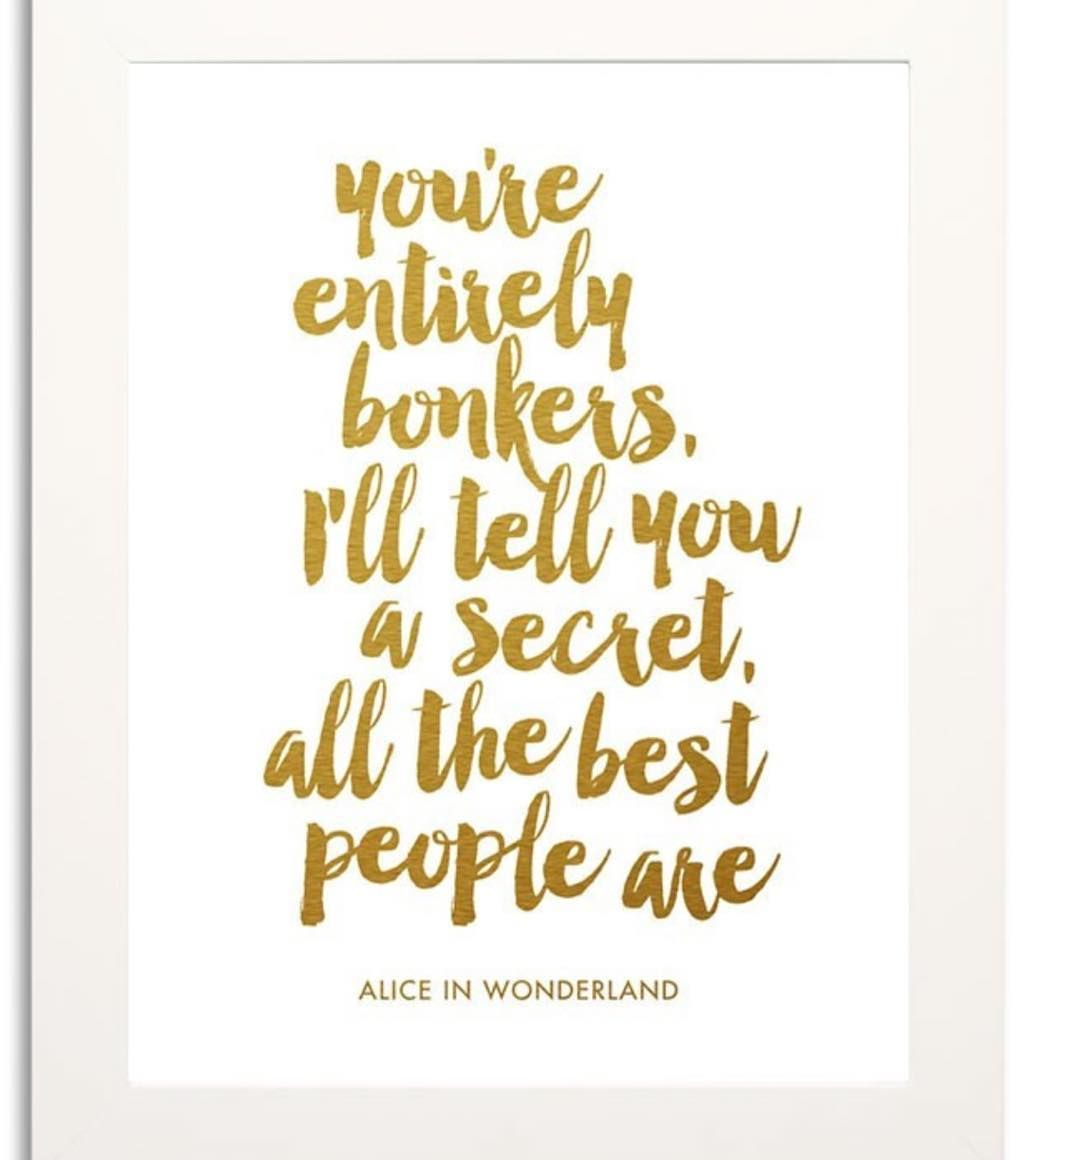 Love Alice in Wonderland! Cute print now in store in framed and unframed versions #aliceinwonderland #bonkers #allthebestpeopleare #shutthefrontdoorstore #stfdnz